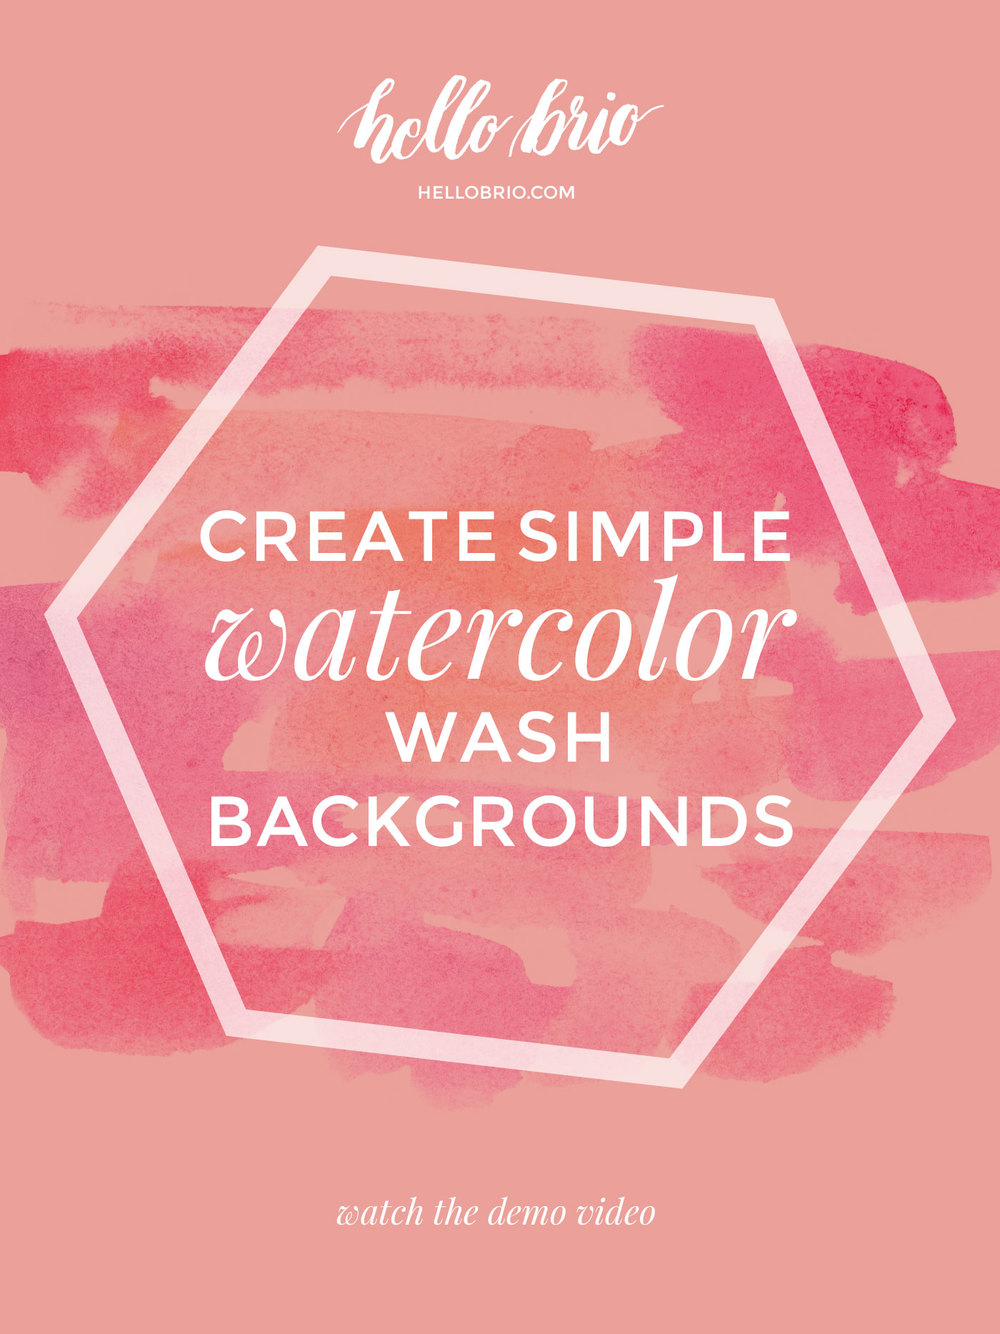 Learn how to create simple watercolor wash backgrounds for your hand lettering projects or to digitize. Video tutorial at hellobrio.com